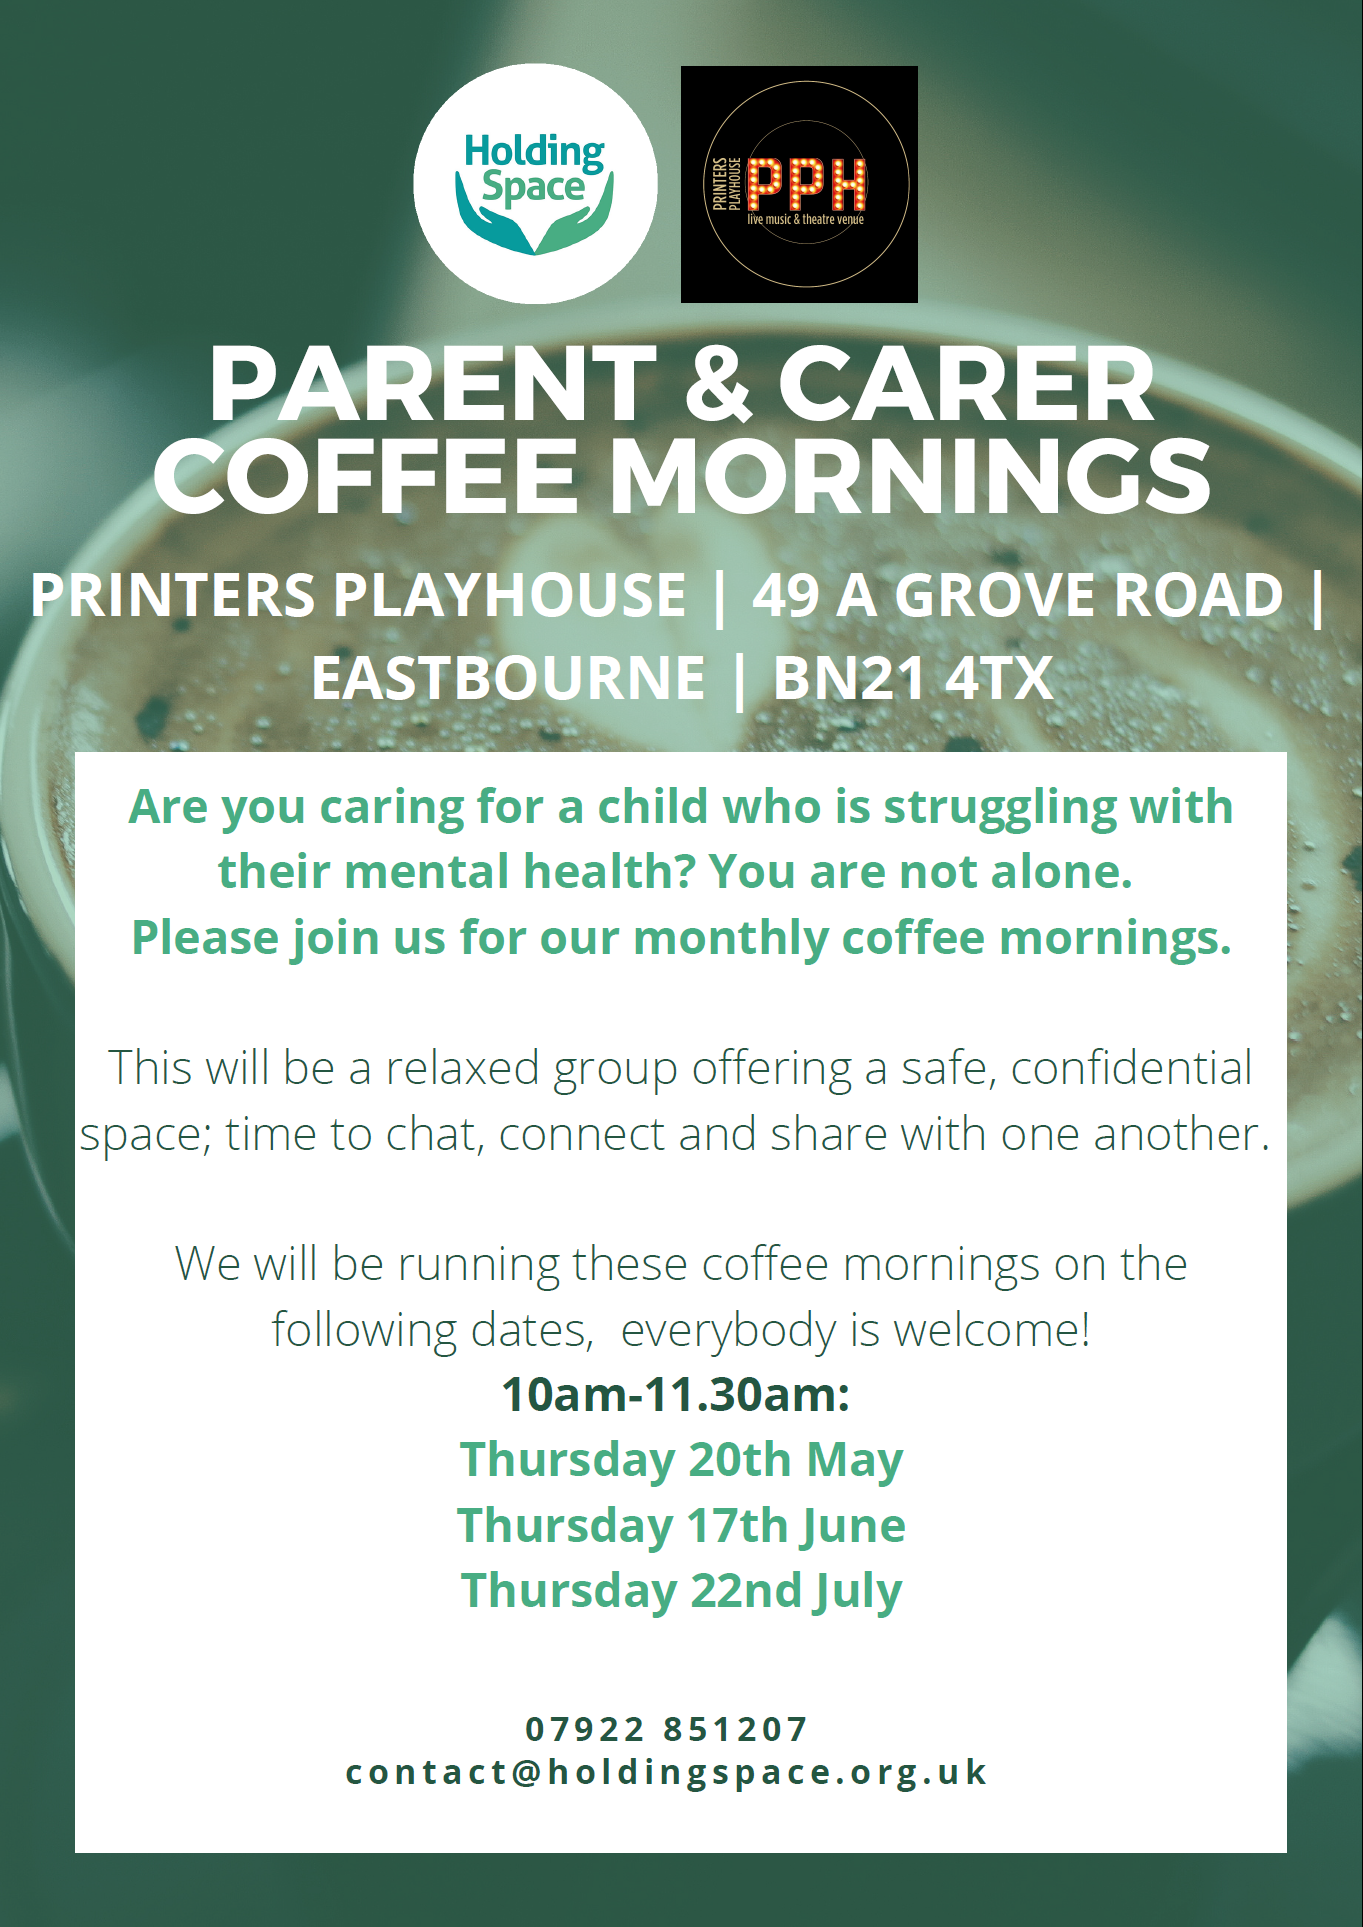 Holding Space – Parents and Carer Coffee Mornings